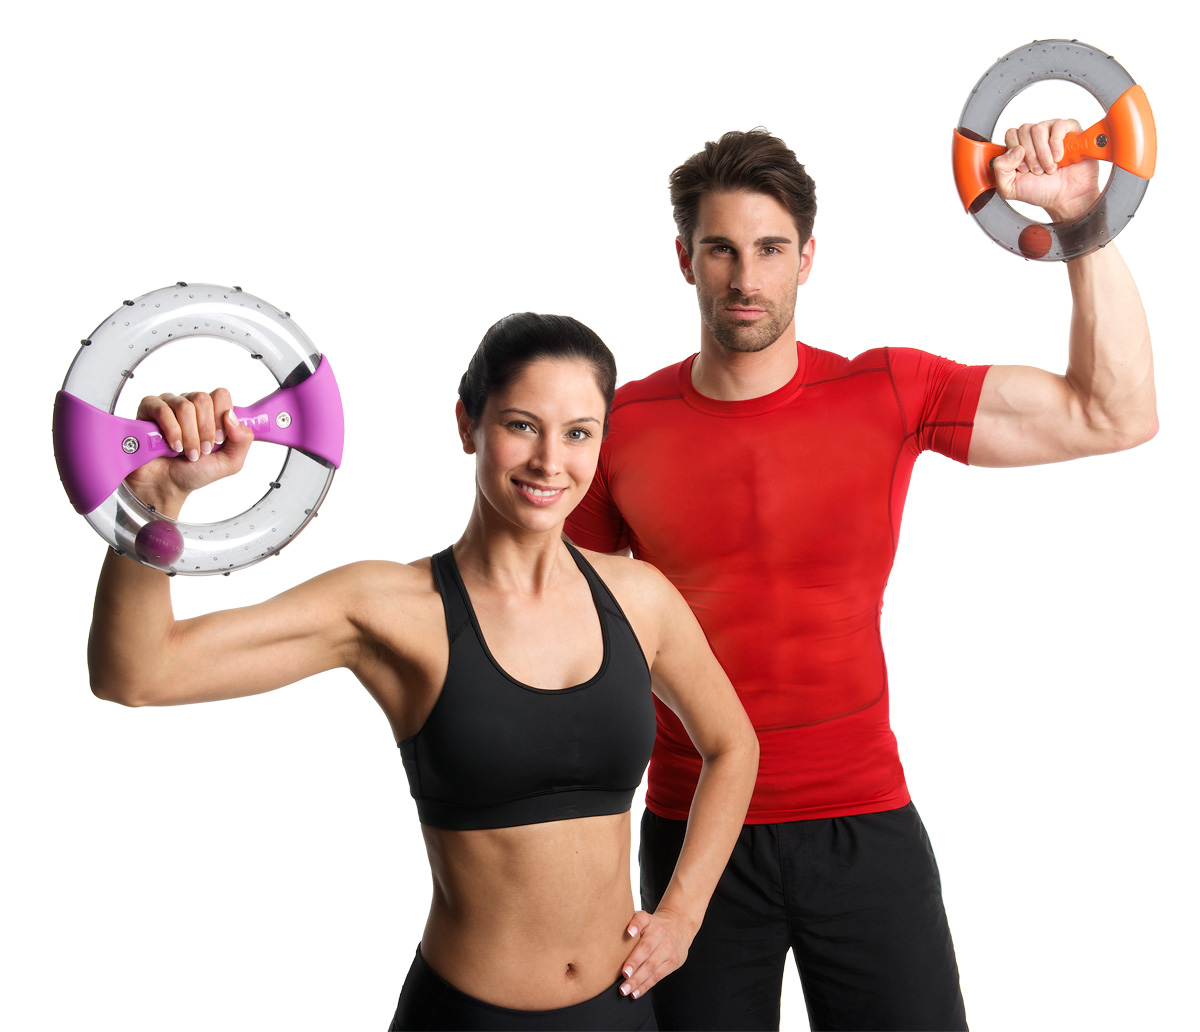 Powerspin, help tone and shape your arms, abs and shoulders!